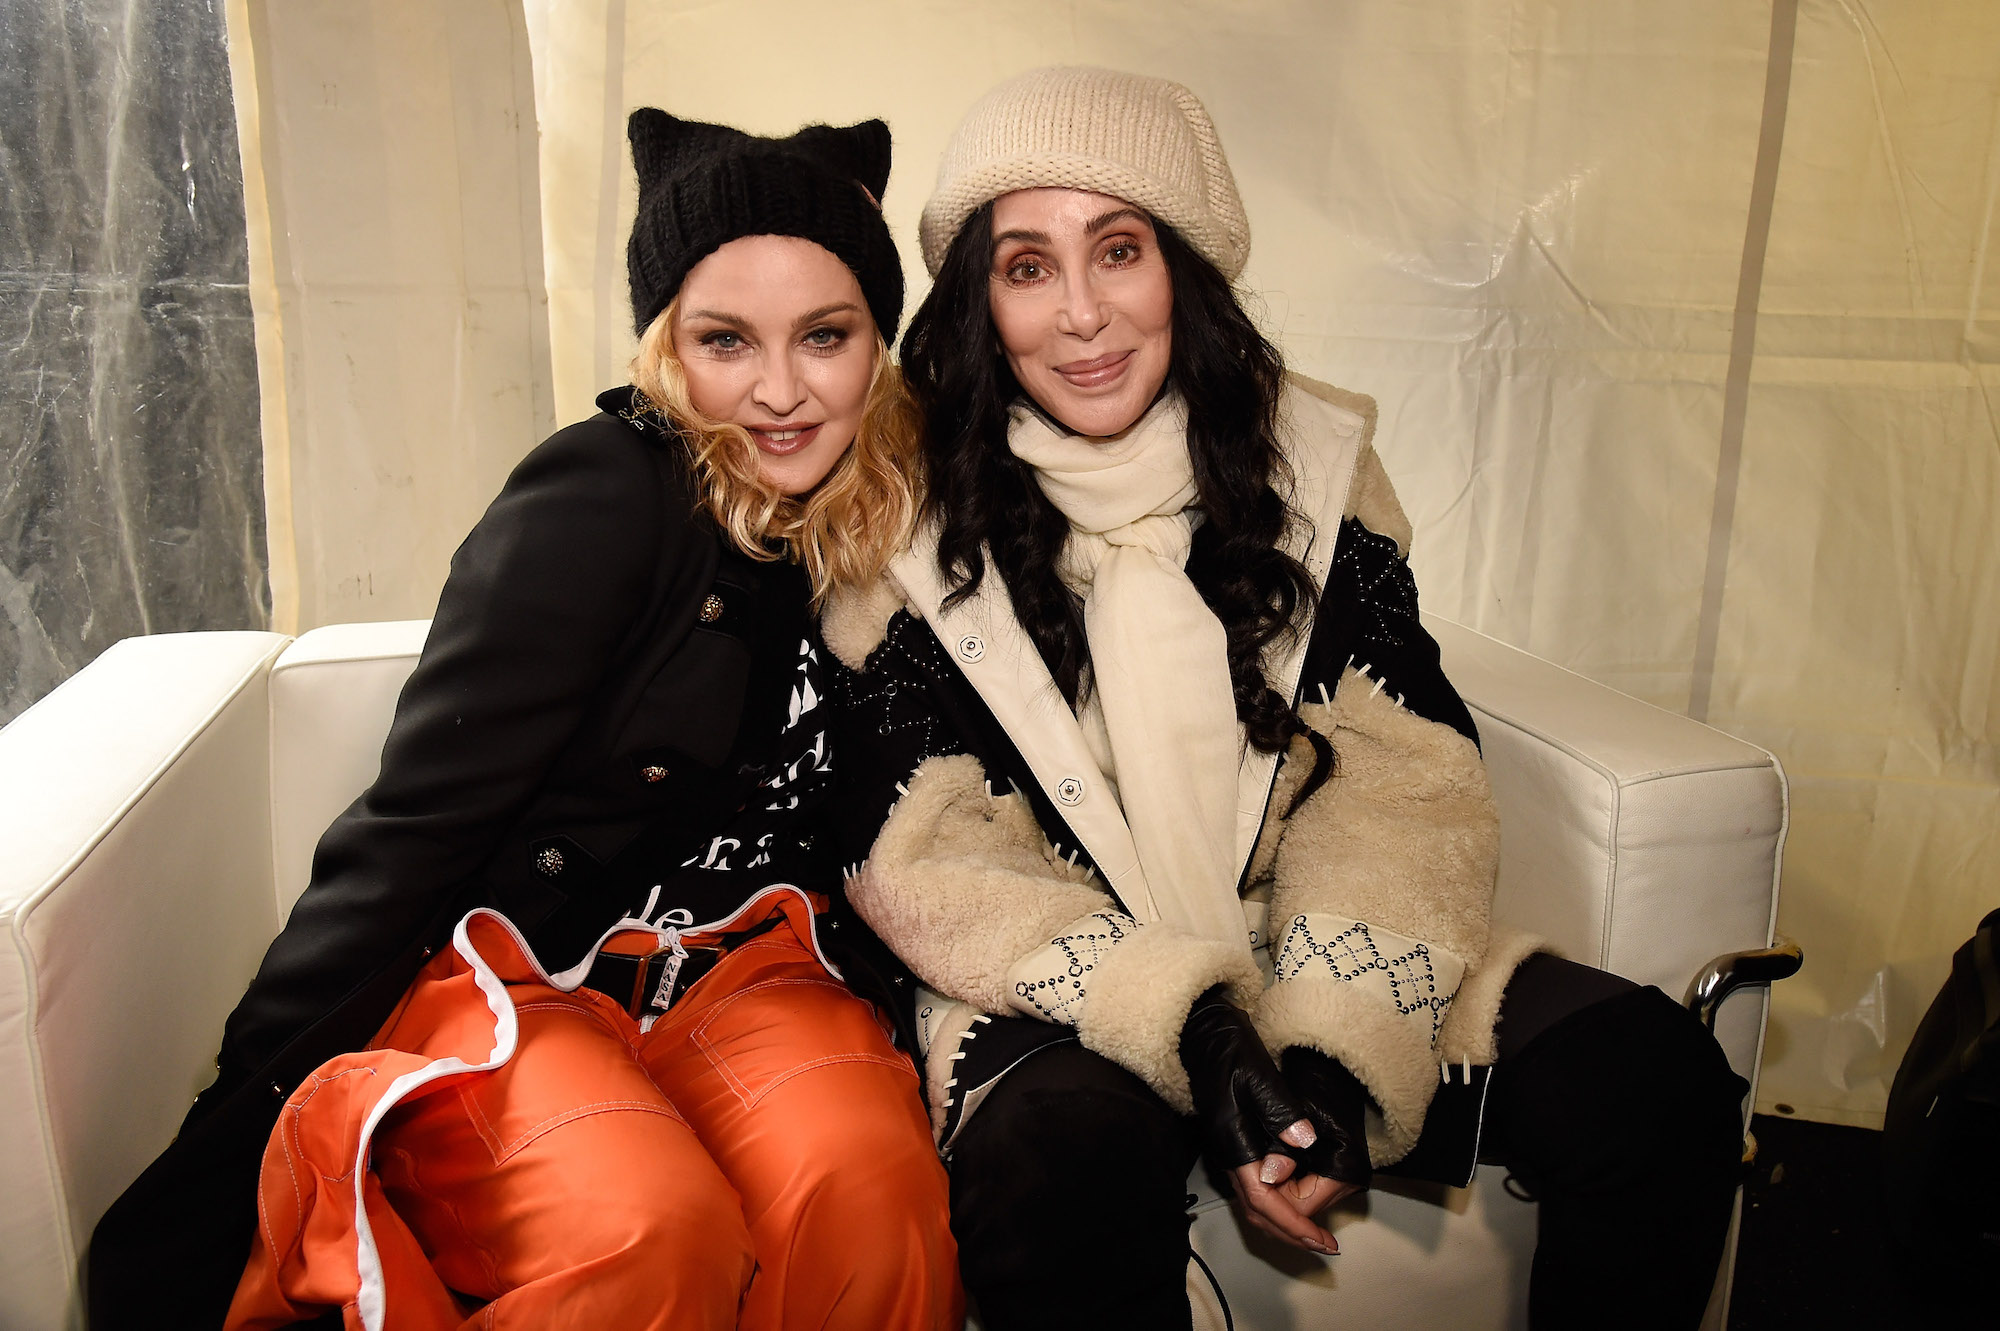 Cher and Madonna lead